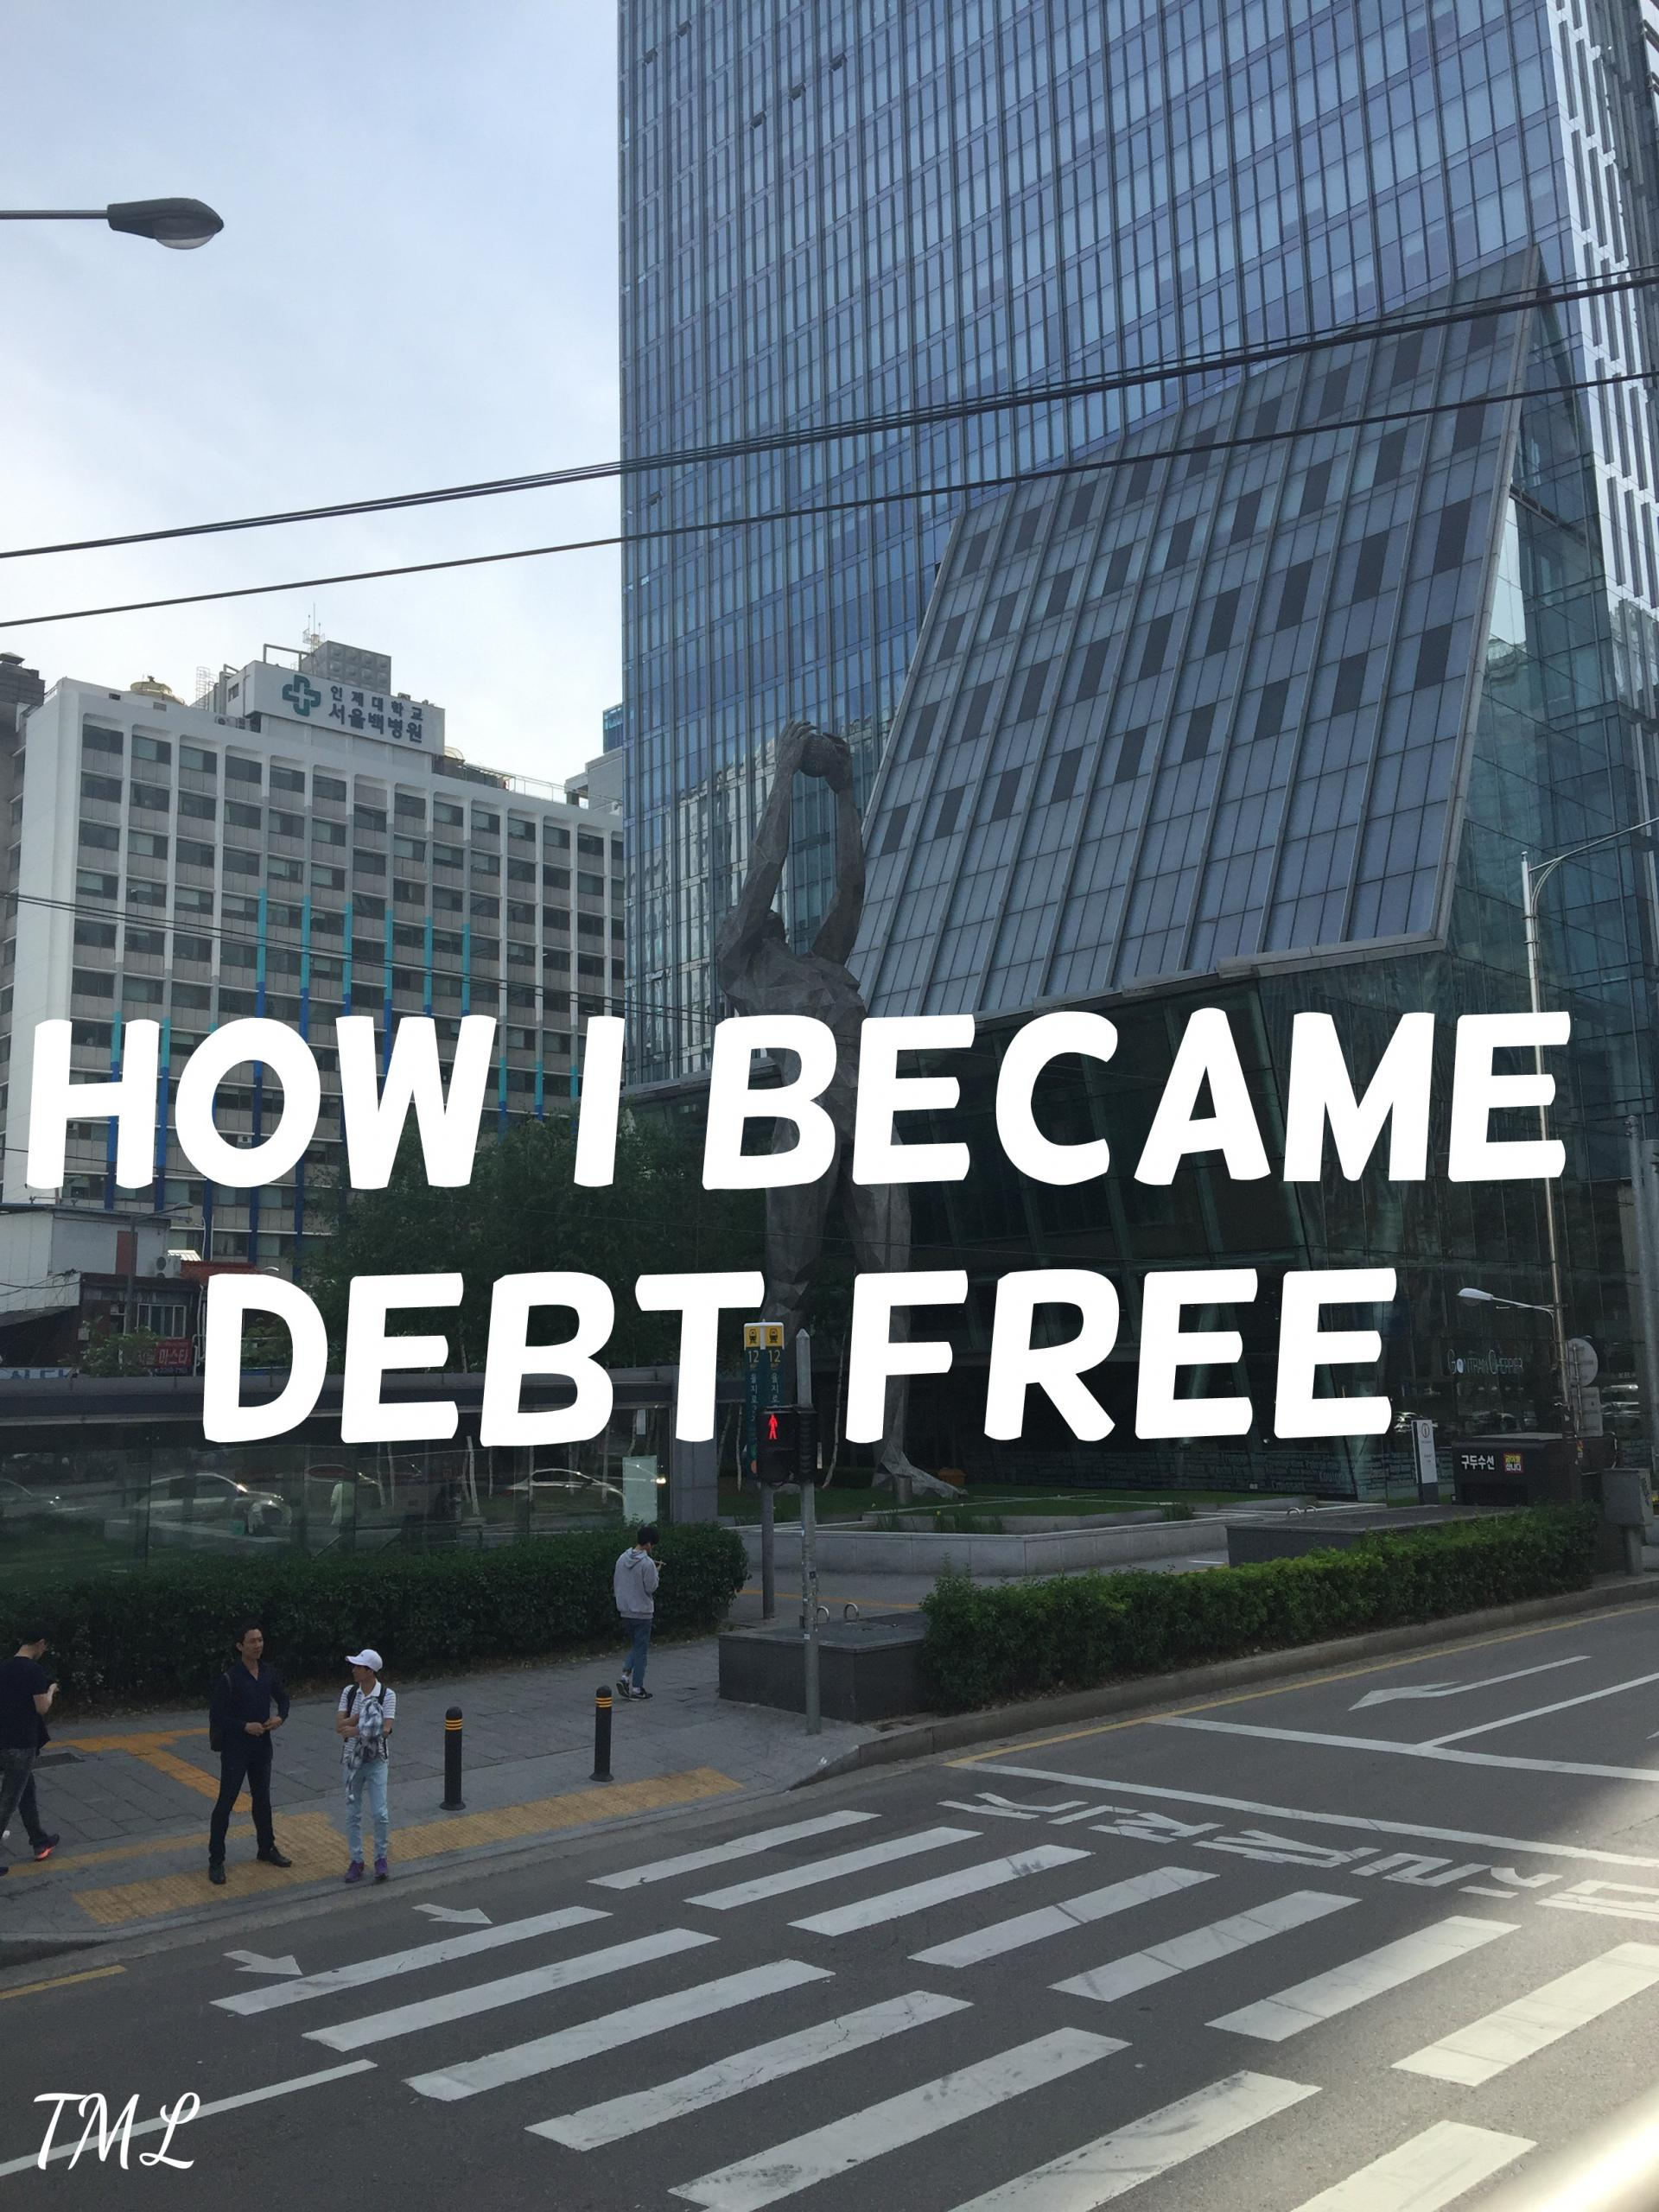 How I became debt free